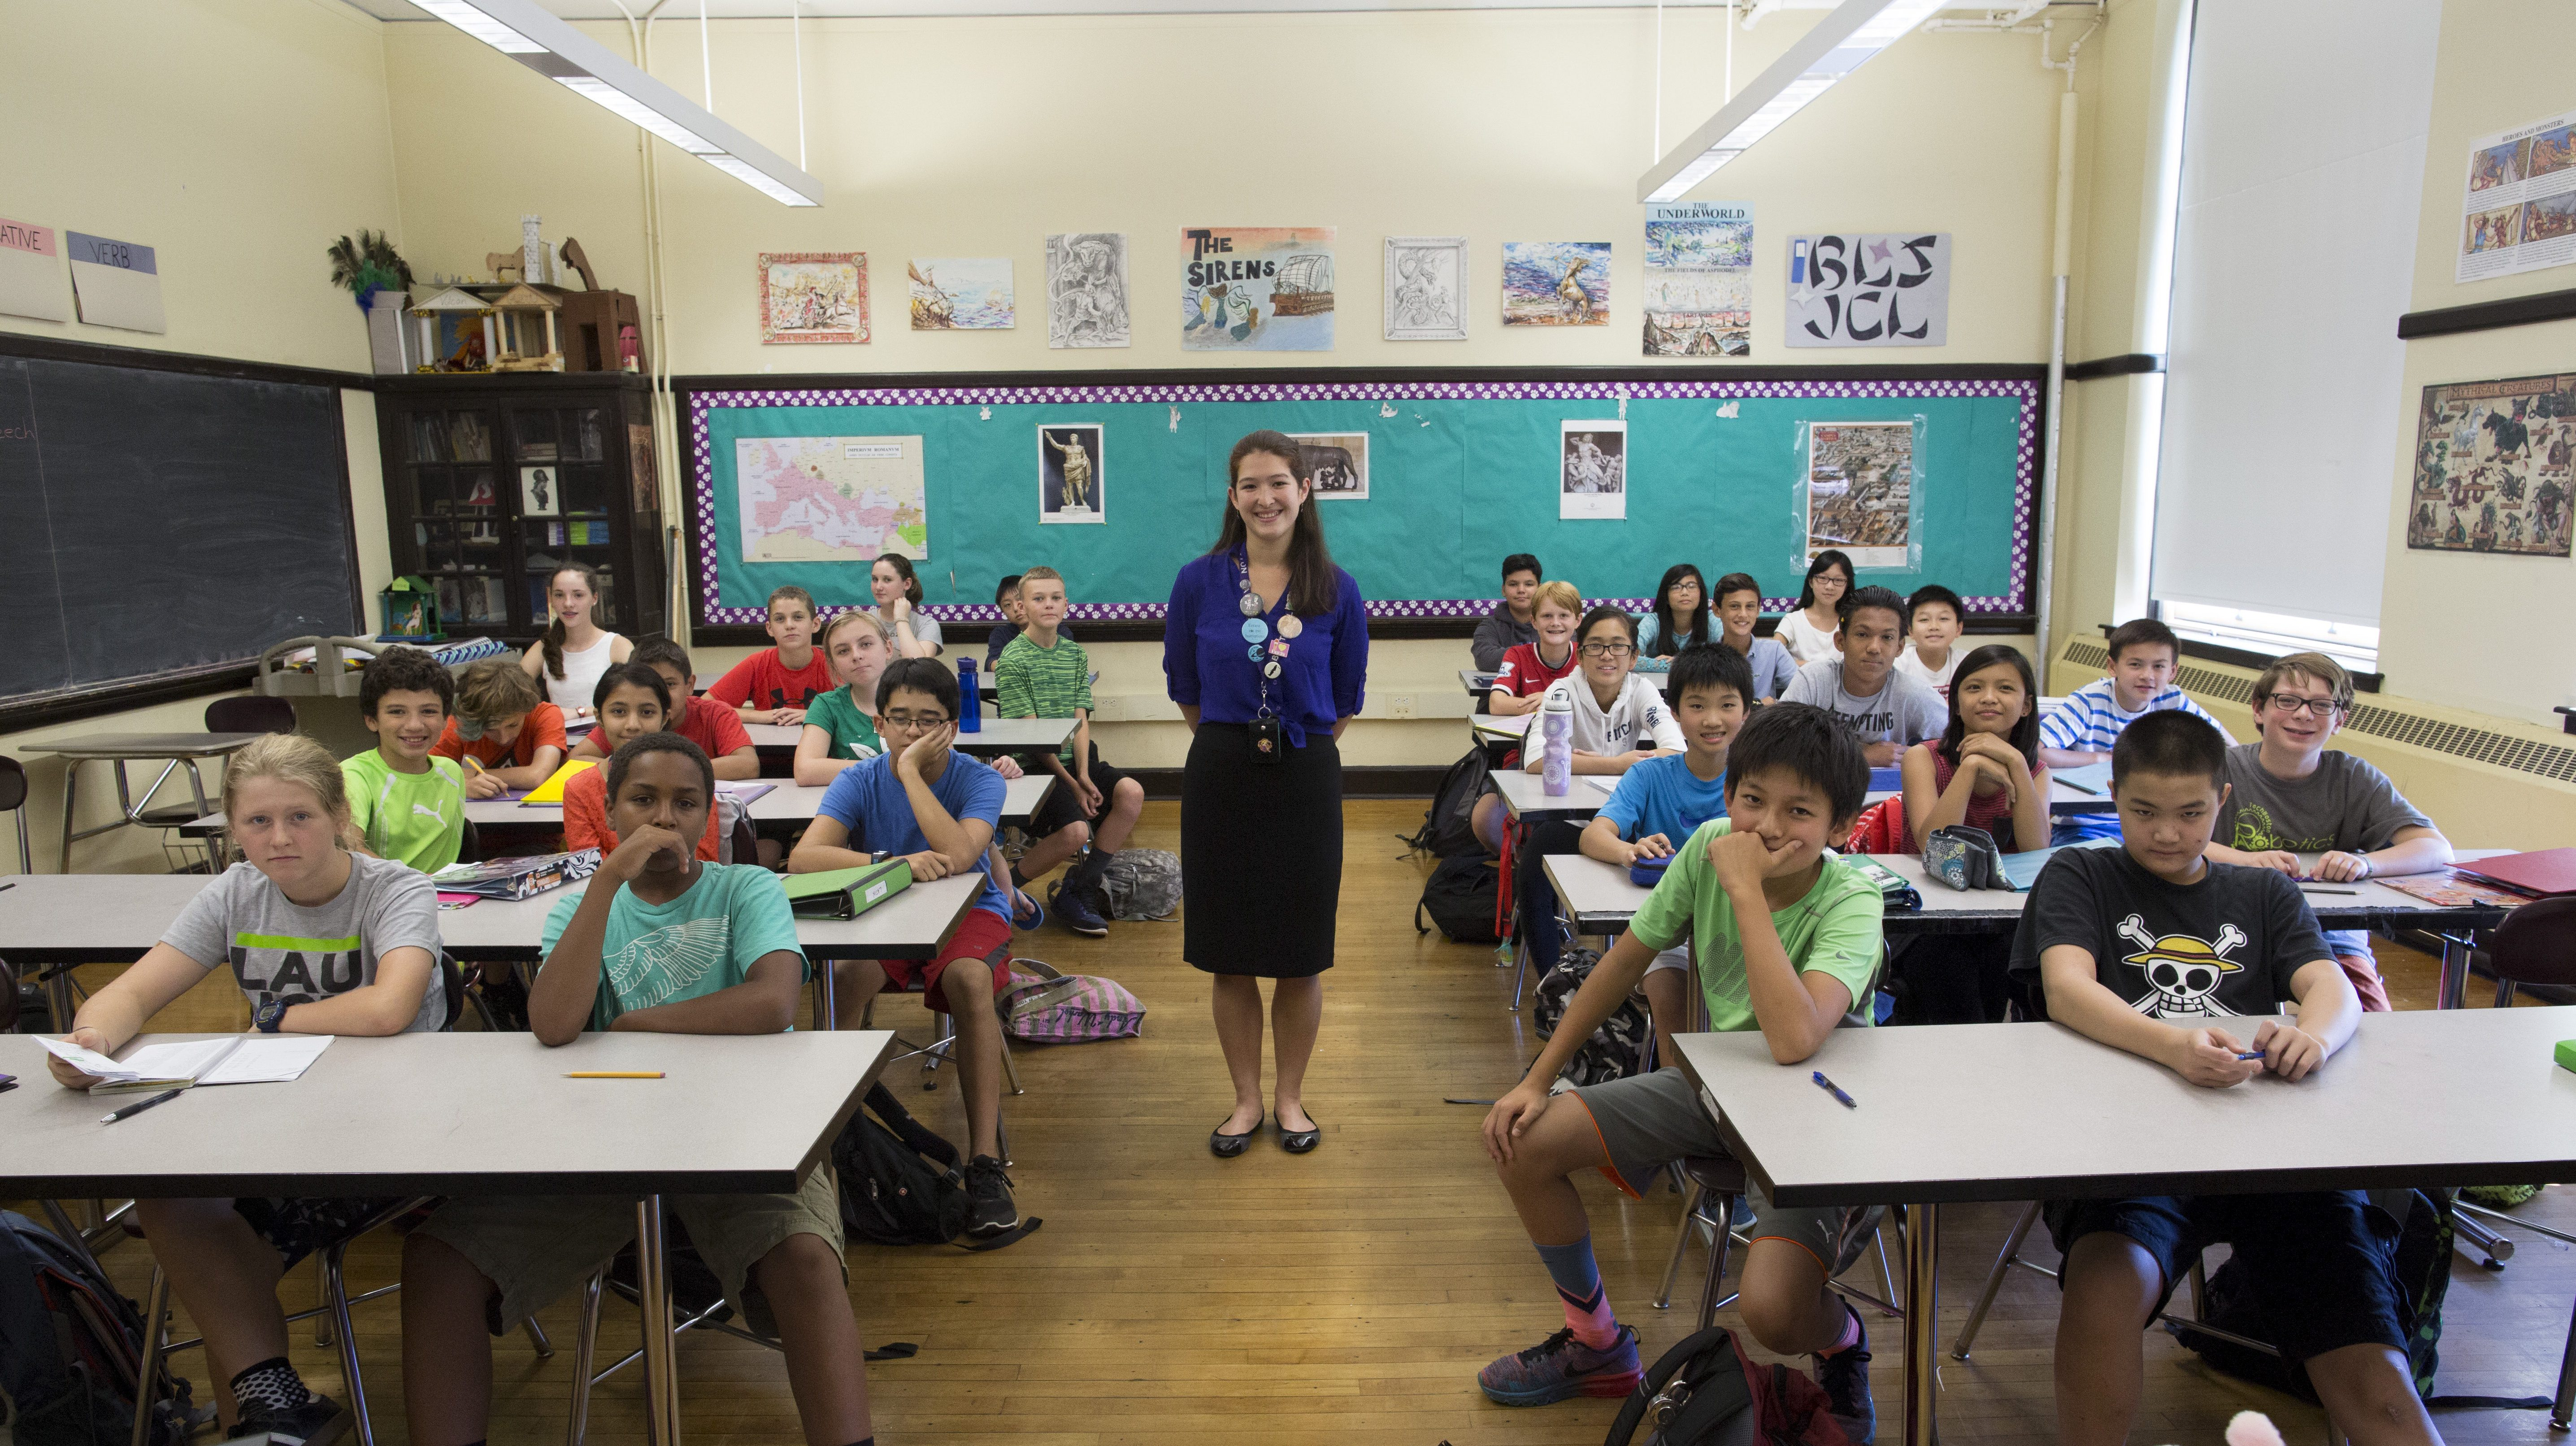 A classroom in Boston Latin School, the first and oldest public school in the U.S, founded in 1635.